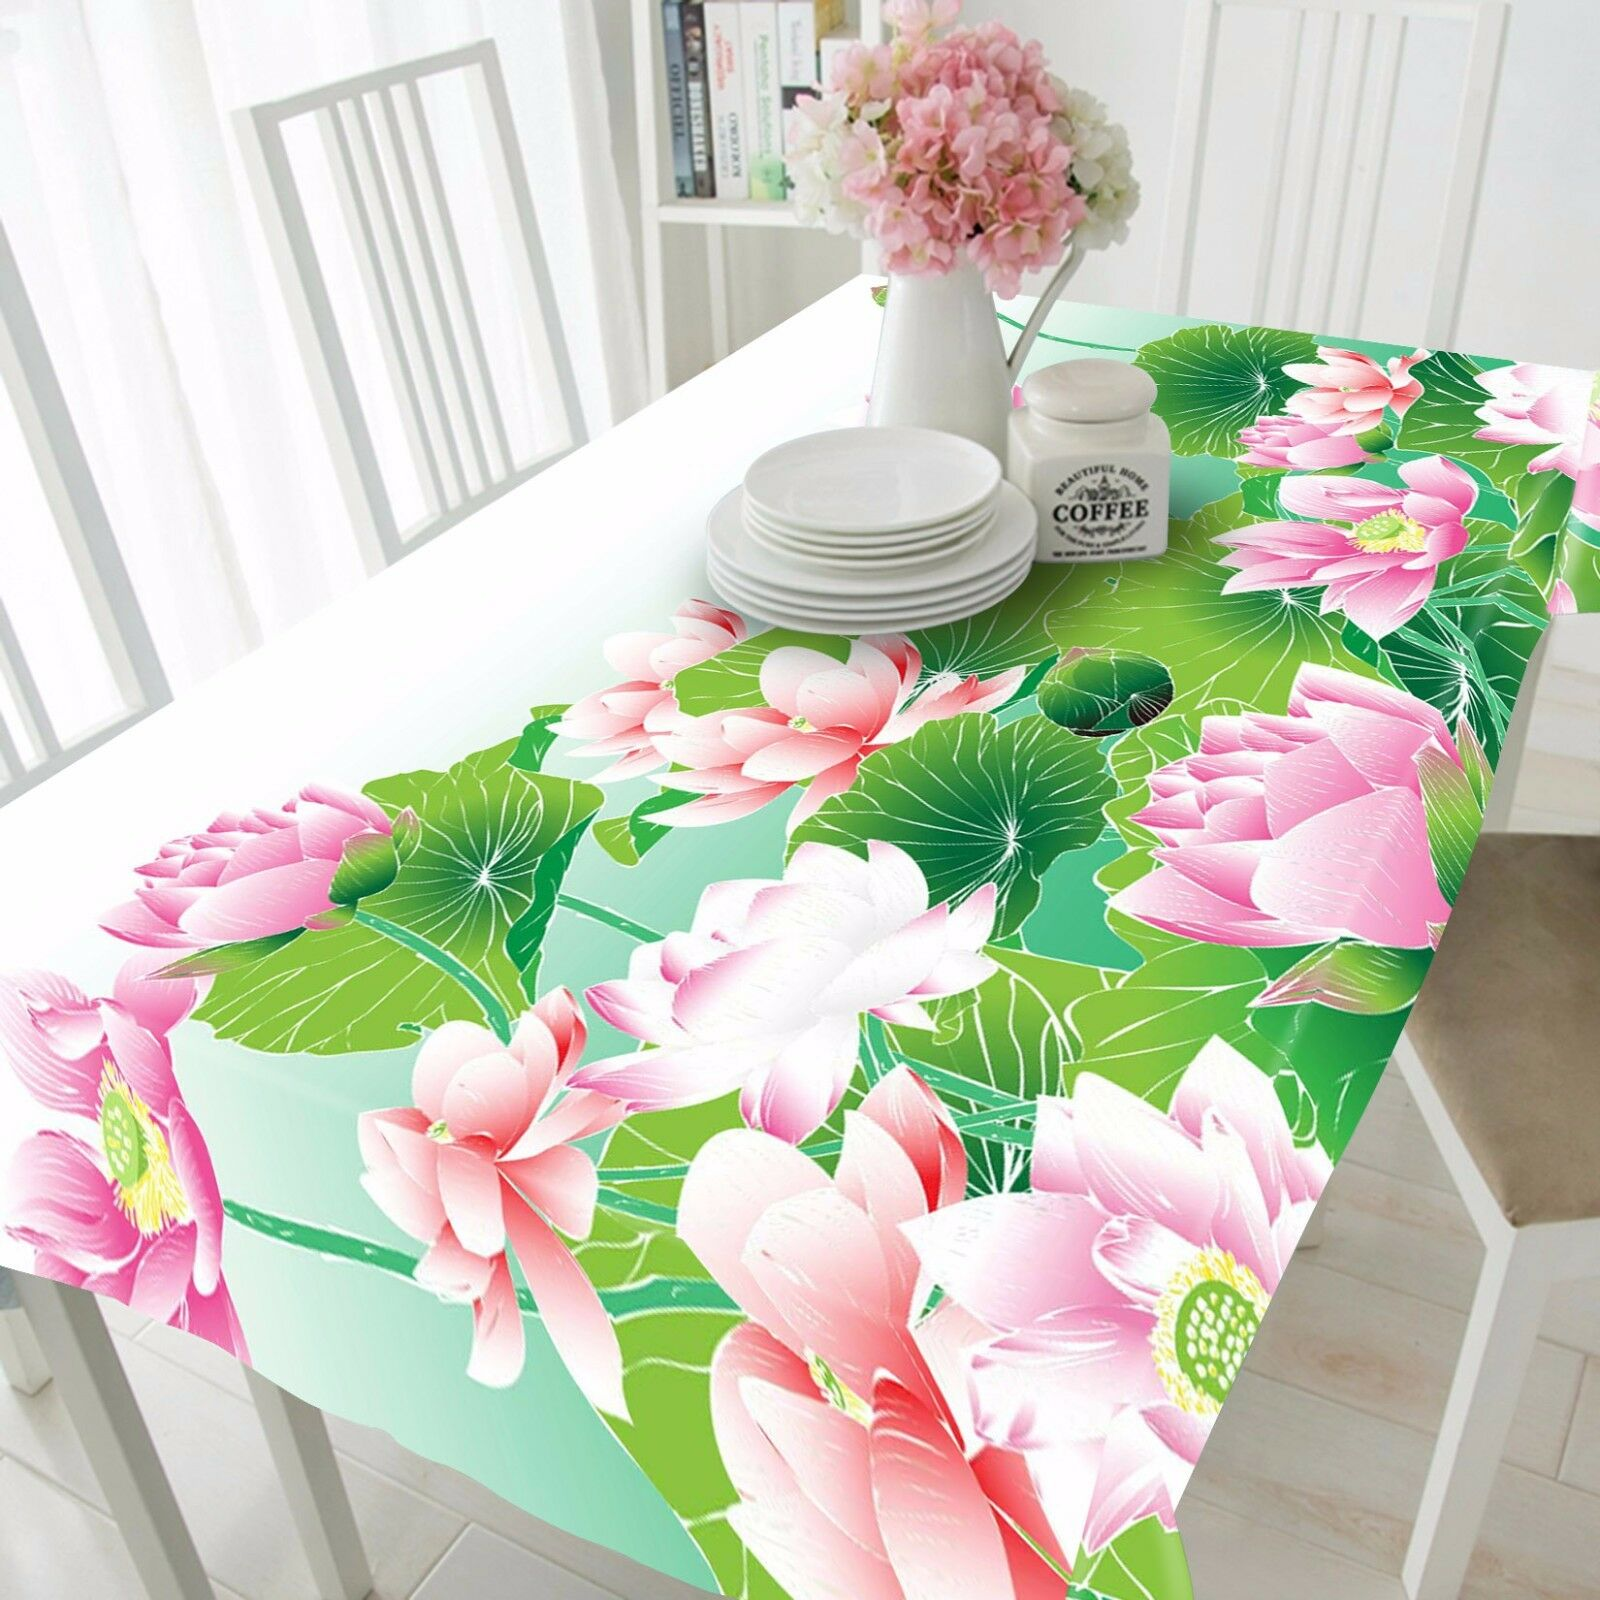 3D Lush Lotus 278 Tablecloth Table Cover Cloth Birthday Party Event AJ WALLPAPER